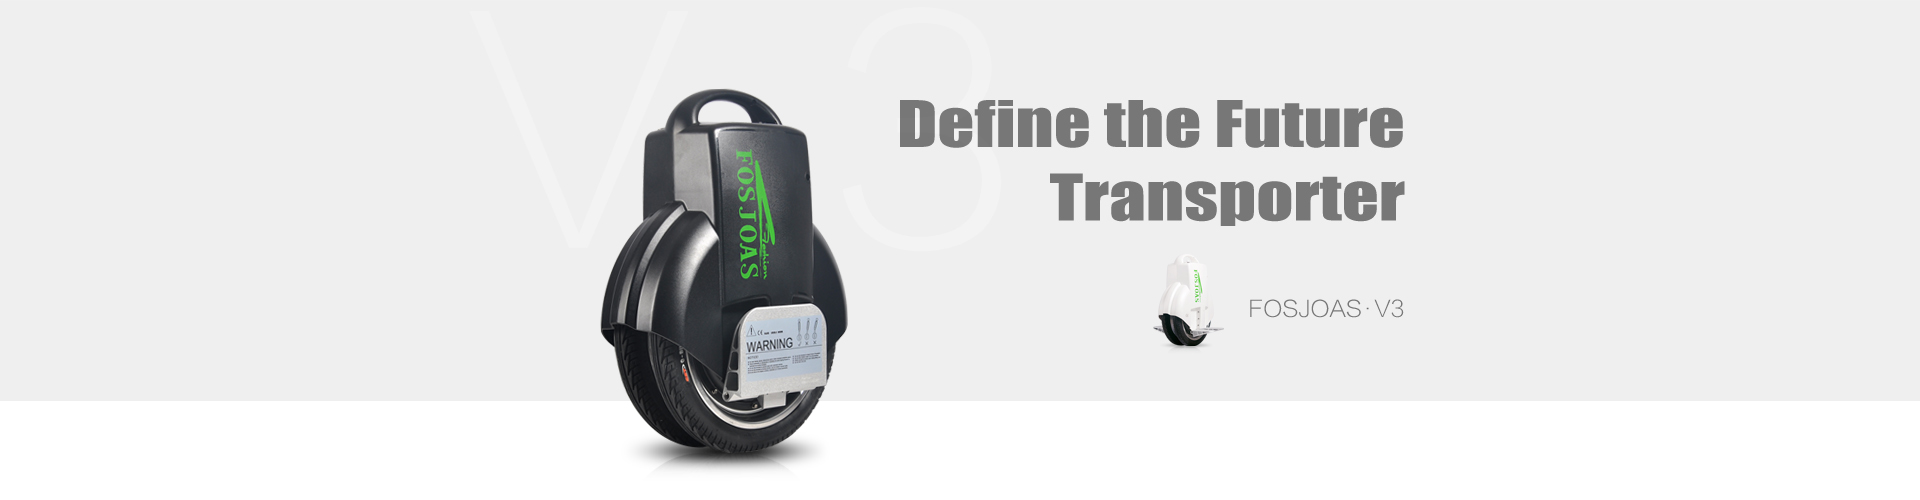 fosjoas V3 electric unicycle